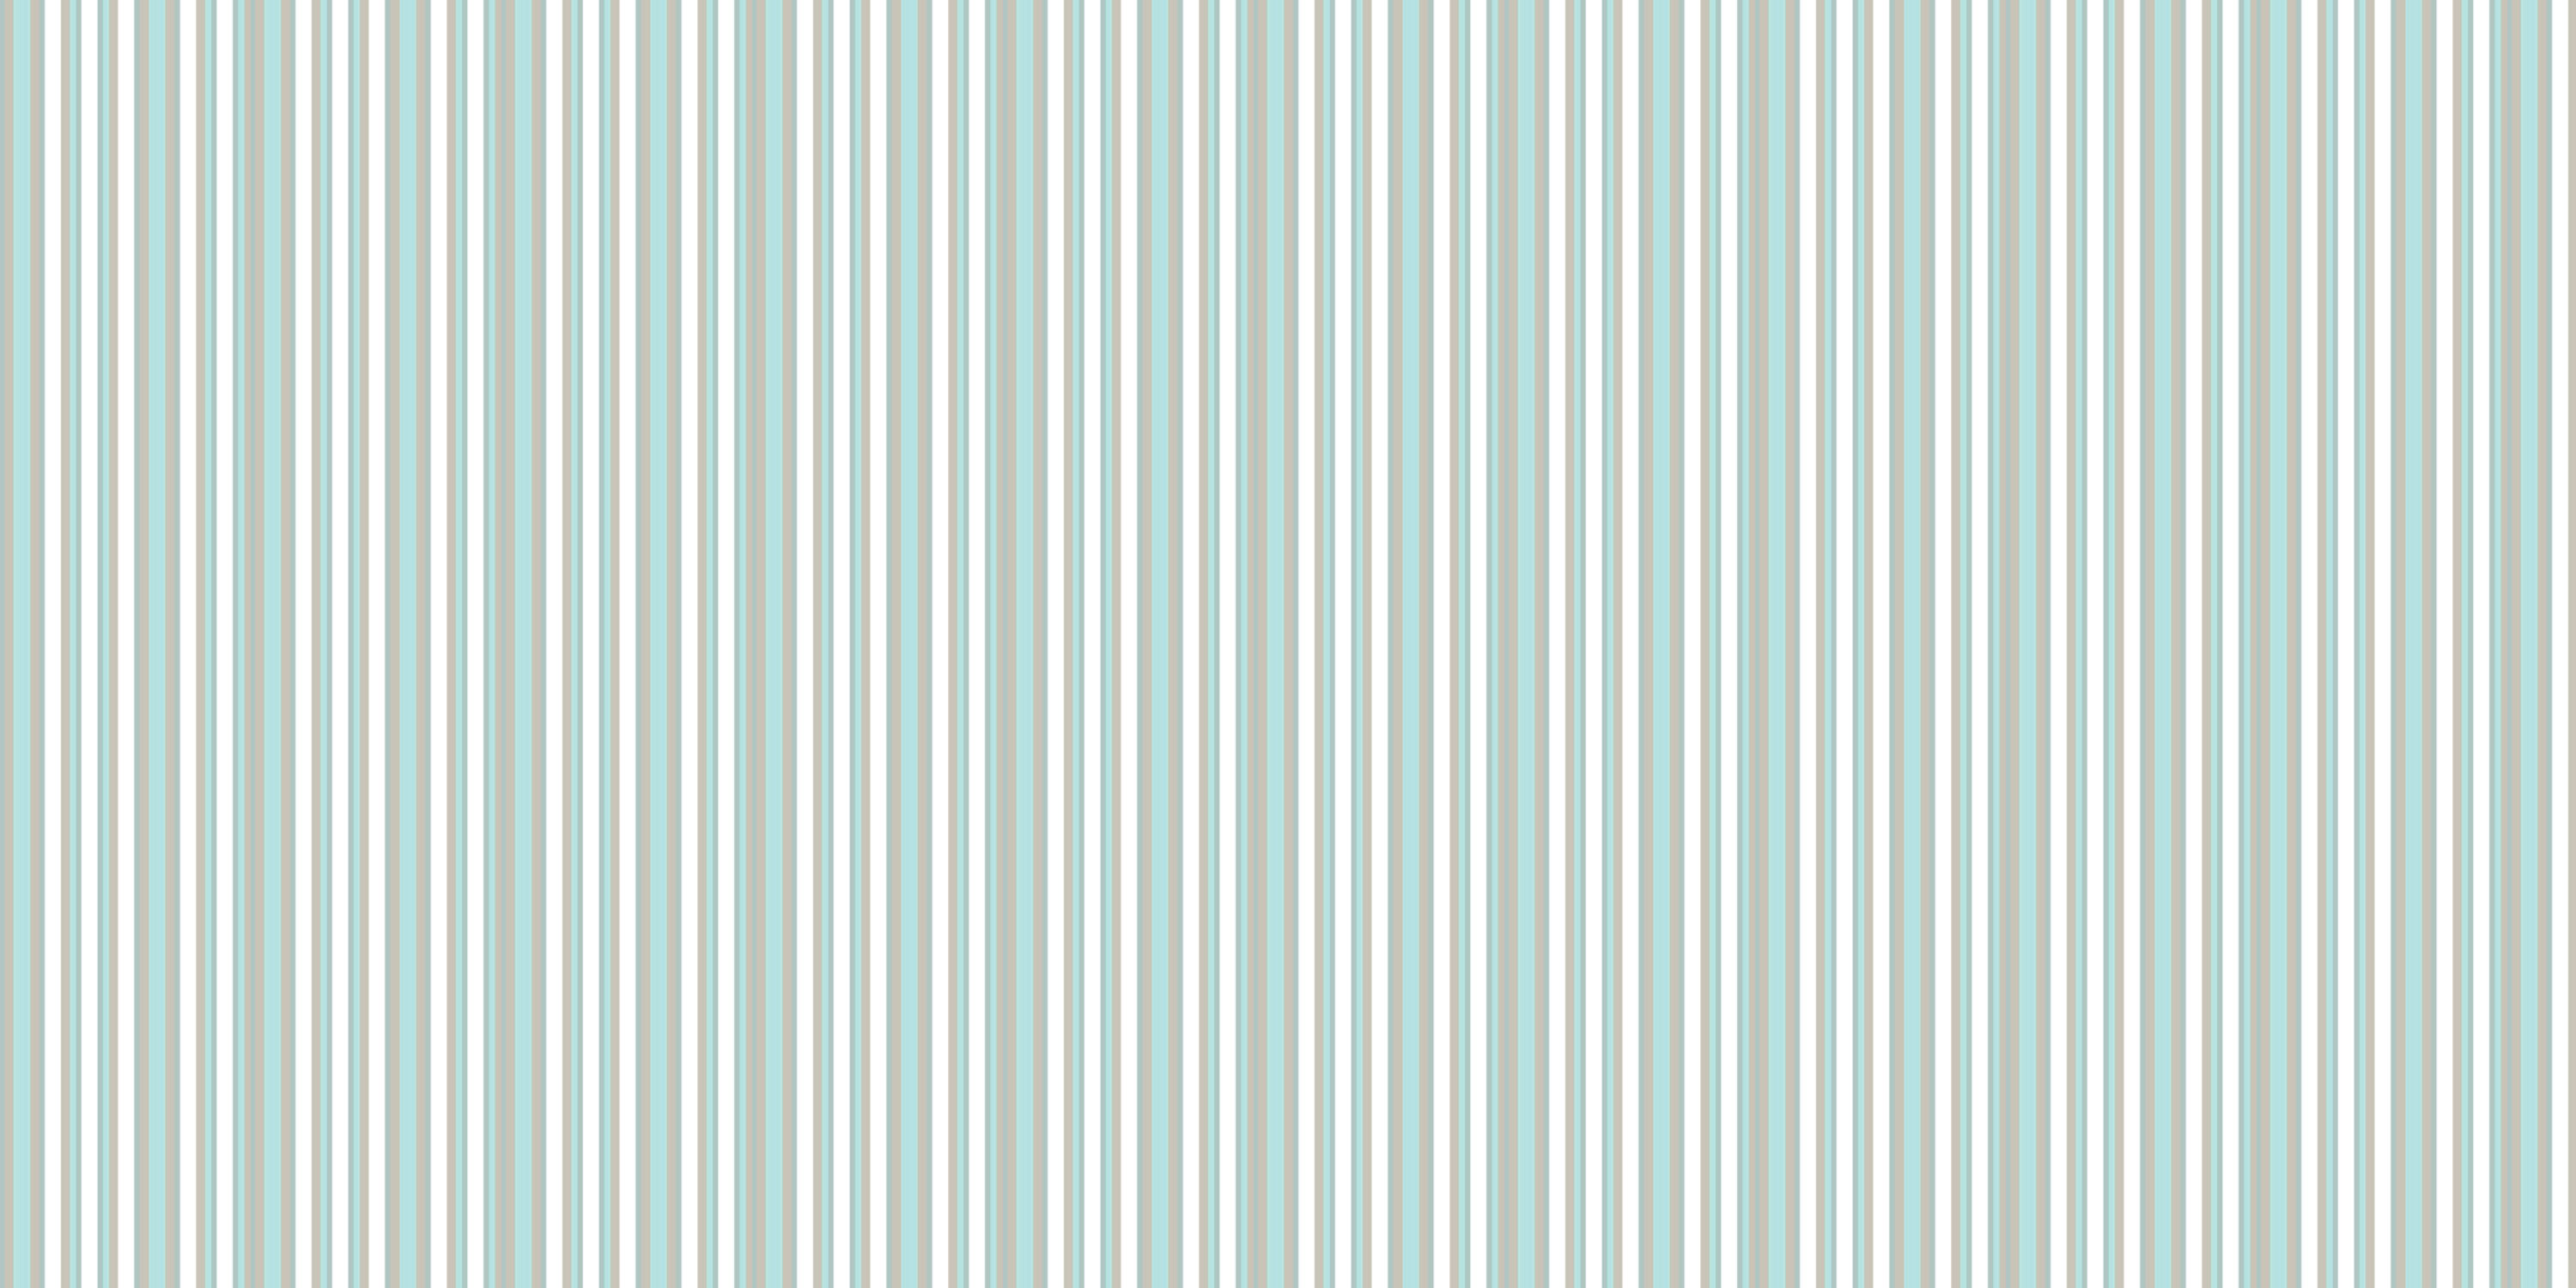 Acoustic felt printed with soft stripes